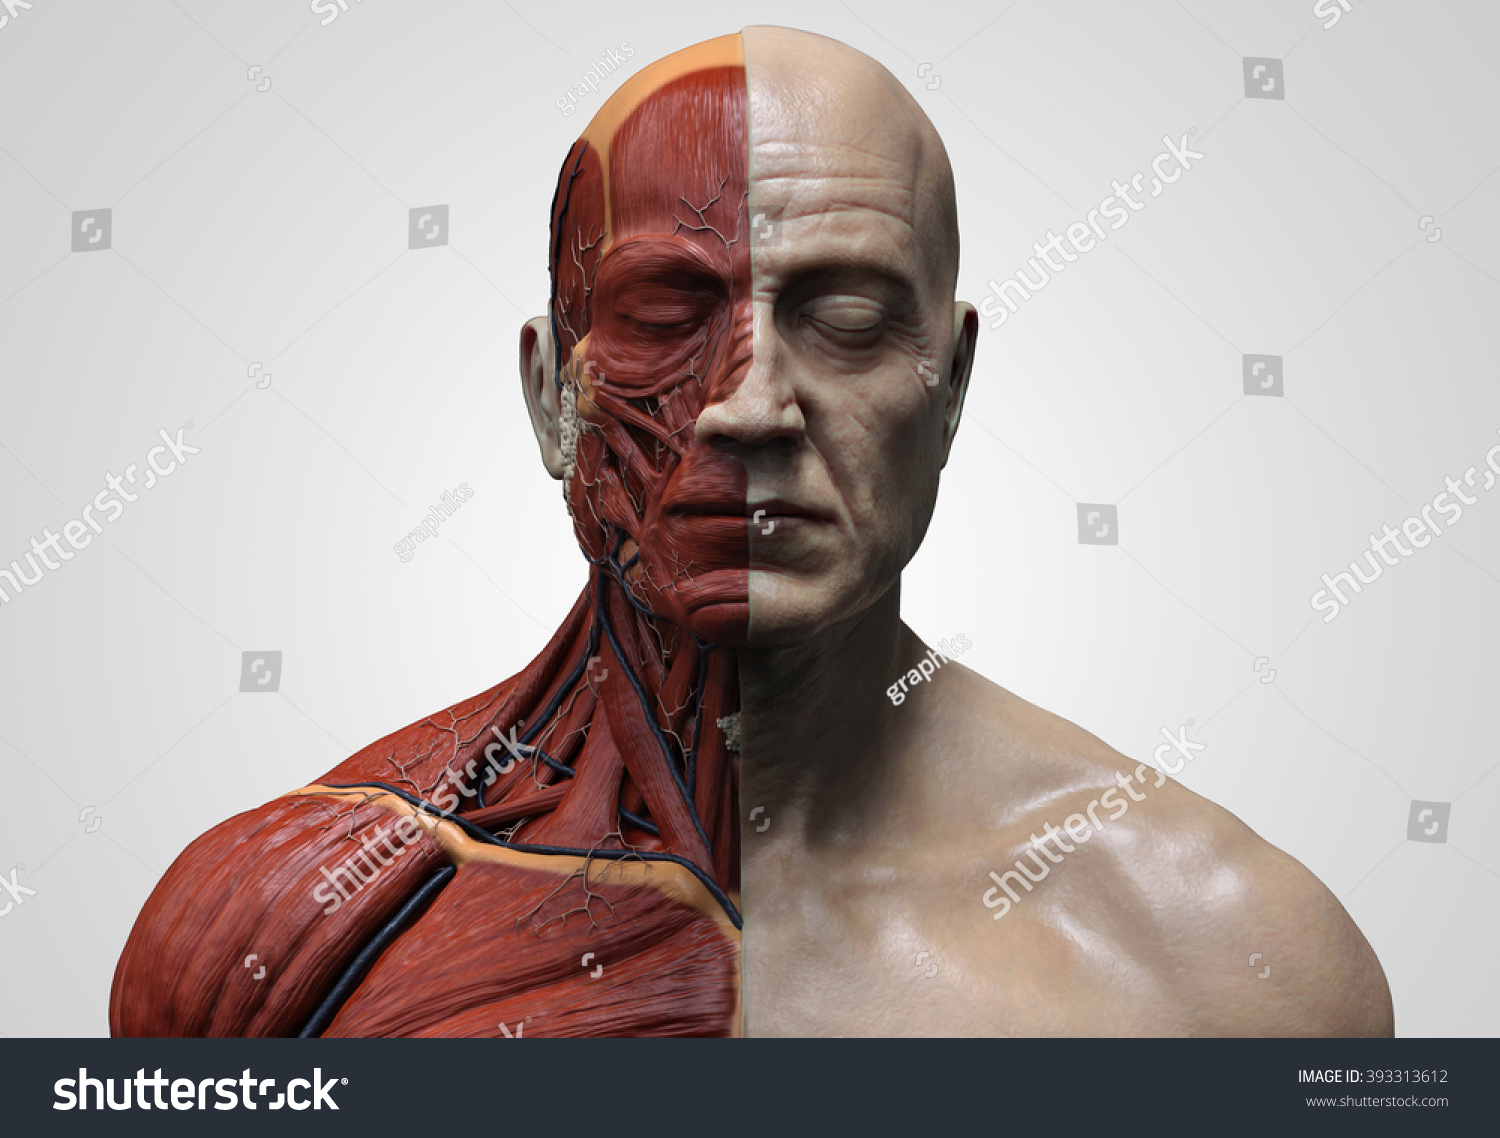 Human Anatomy Muscle Anatomy Face Neck Stock Illustration 393313612